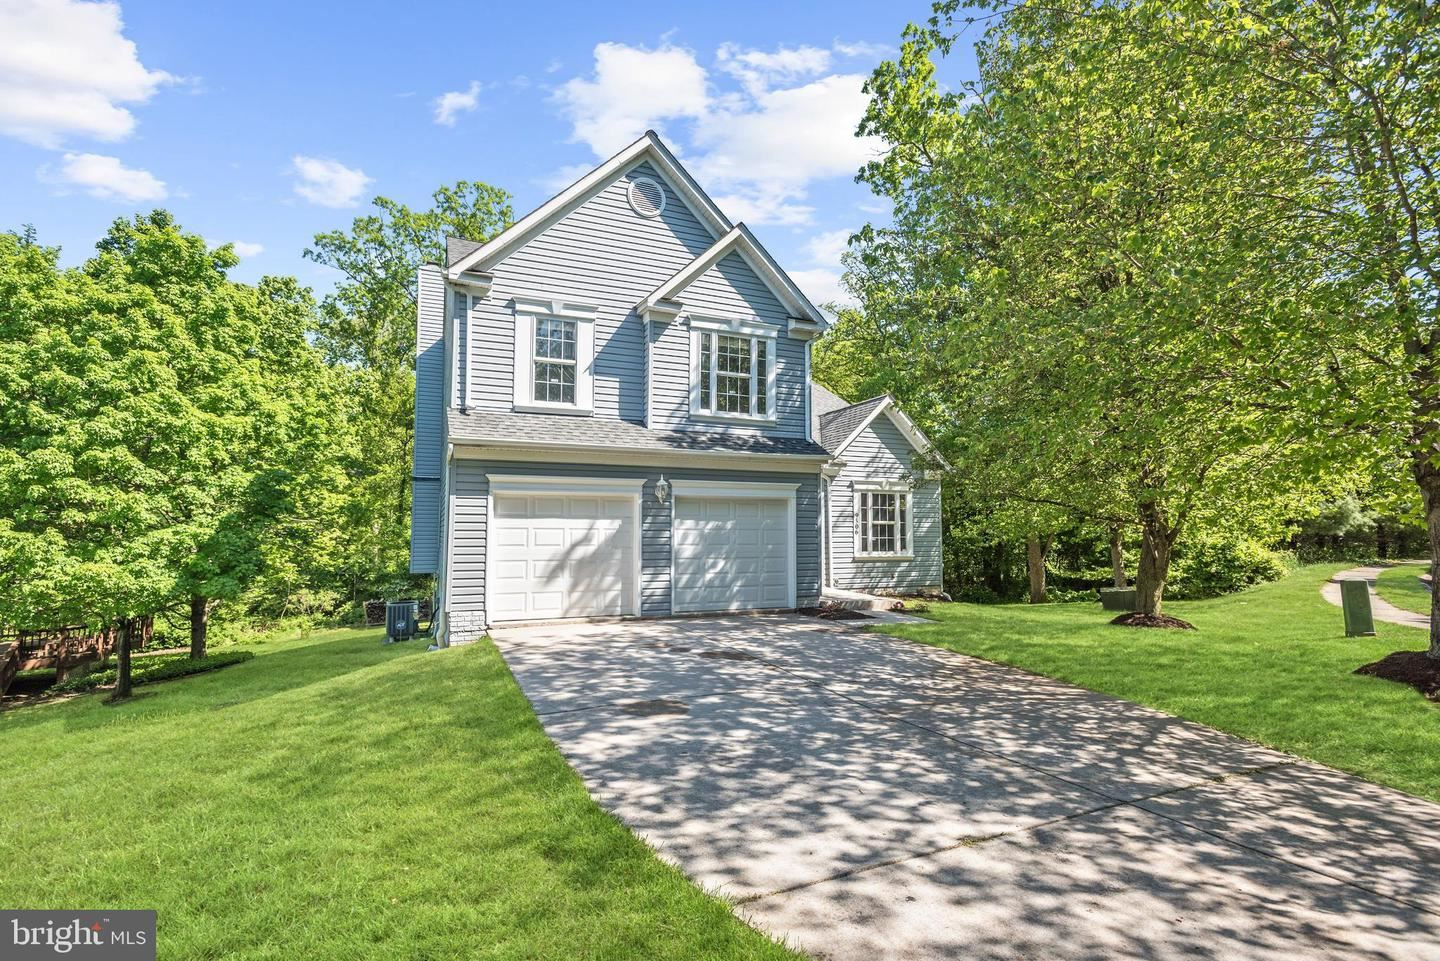 9506 RIDGEVIEW DR, Columbia, MD 21046 - MLS#: MDHW294296